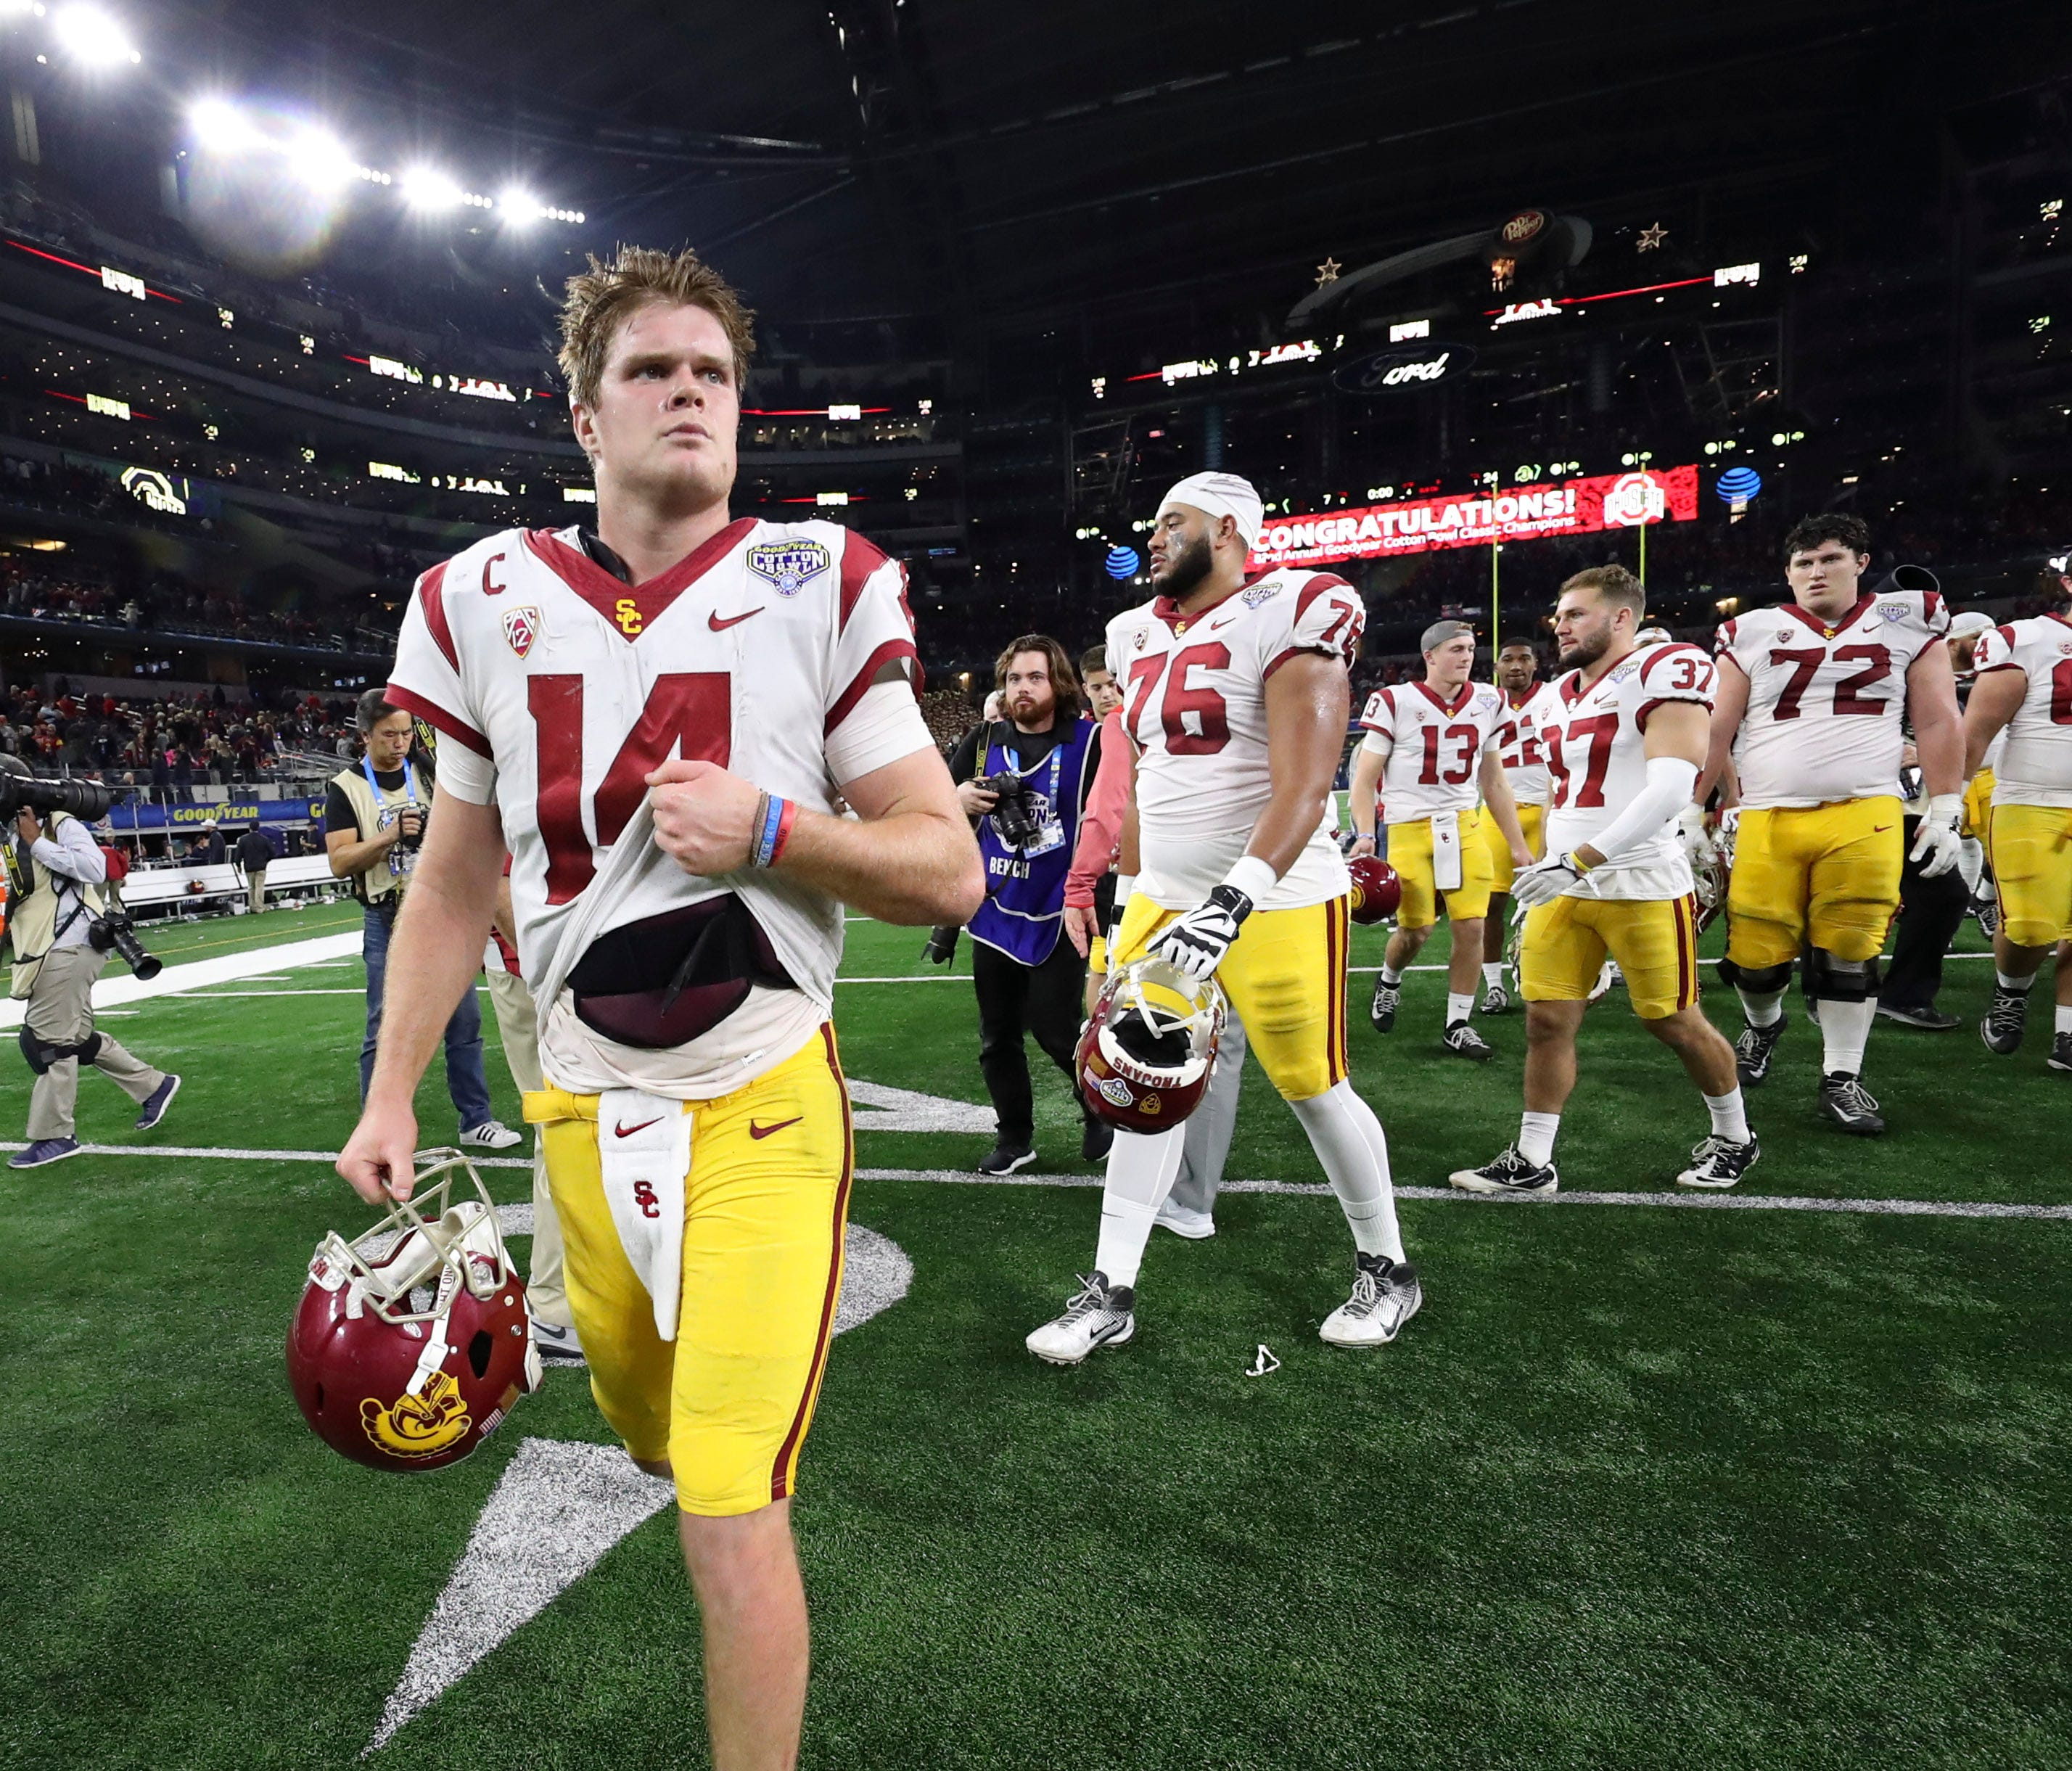 Quarterback Sam Darnold and the USC Trojans depart after losing to Ohio State in the Cotton Bowl.